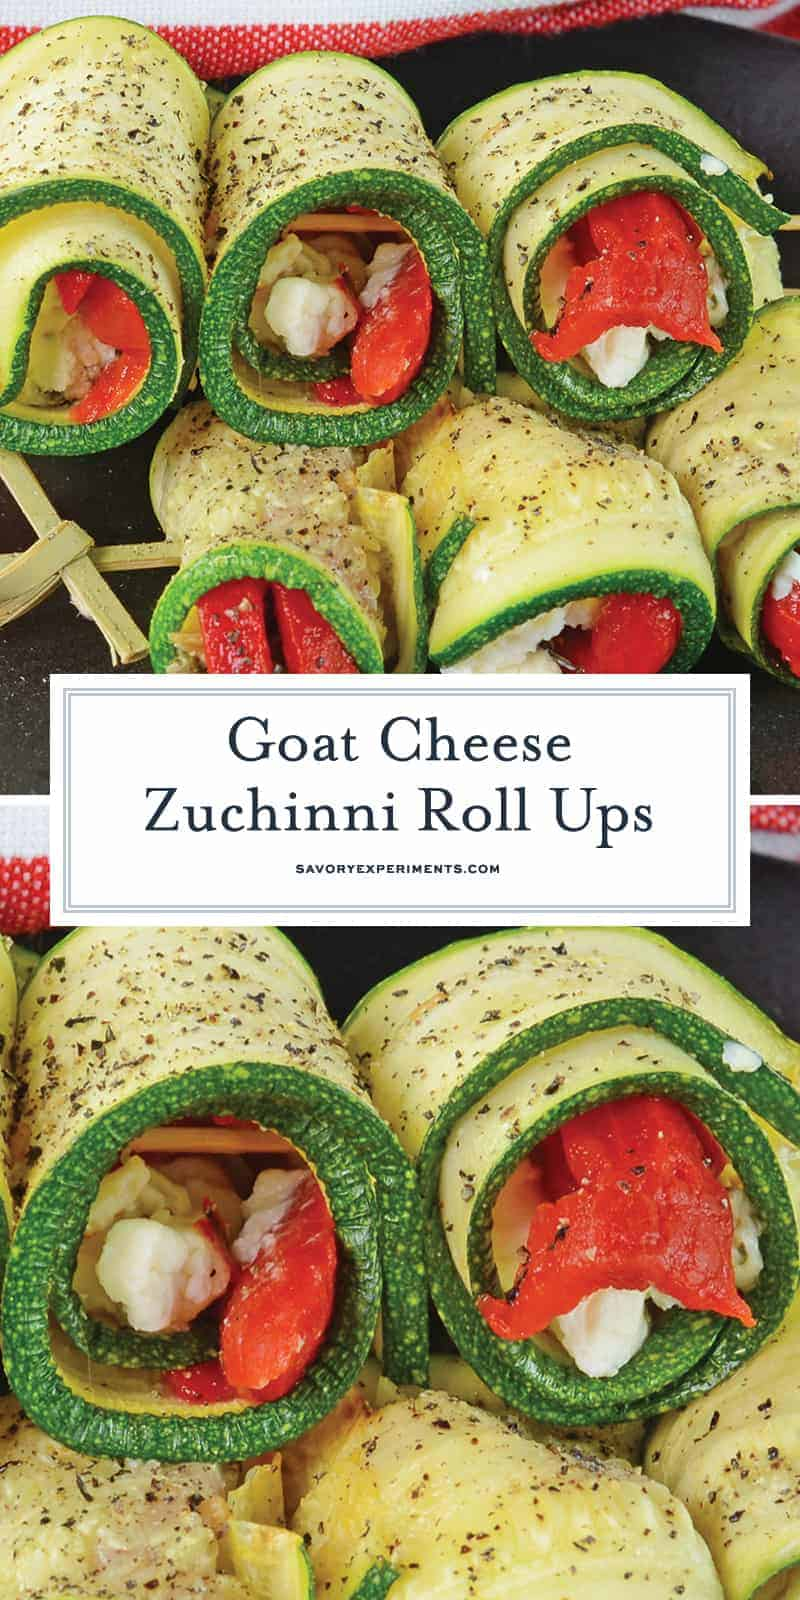 Goat Cheese Zucchini Roll Ups are a tasty toothpick appetizer made with roasted red peppers, seasonings, and creamy goat cheese, all wrapped up in zucchini! #zucchinirollups #rolluprecipes #vegetarianrollups www.savoryexperiments.com